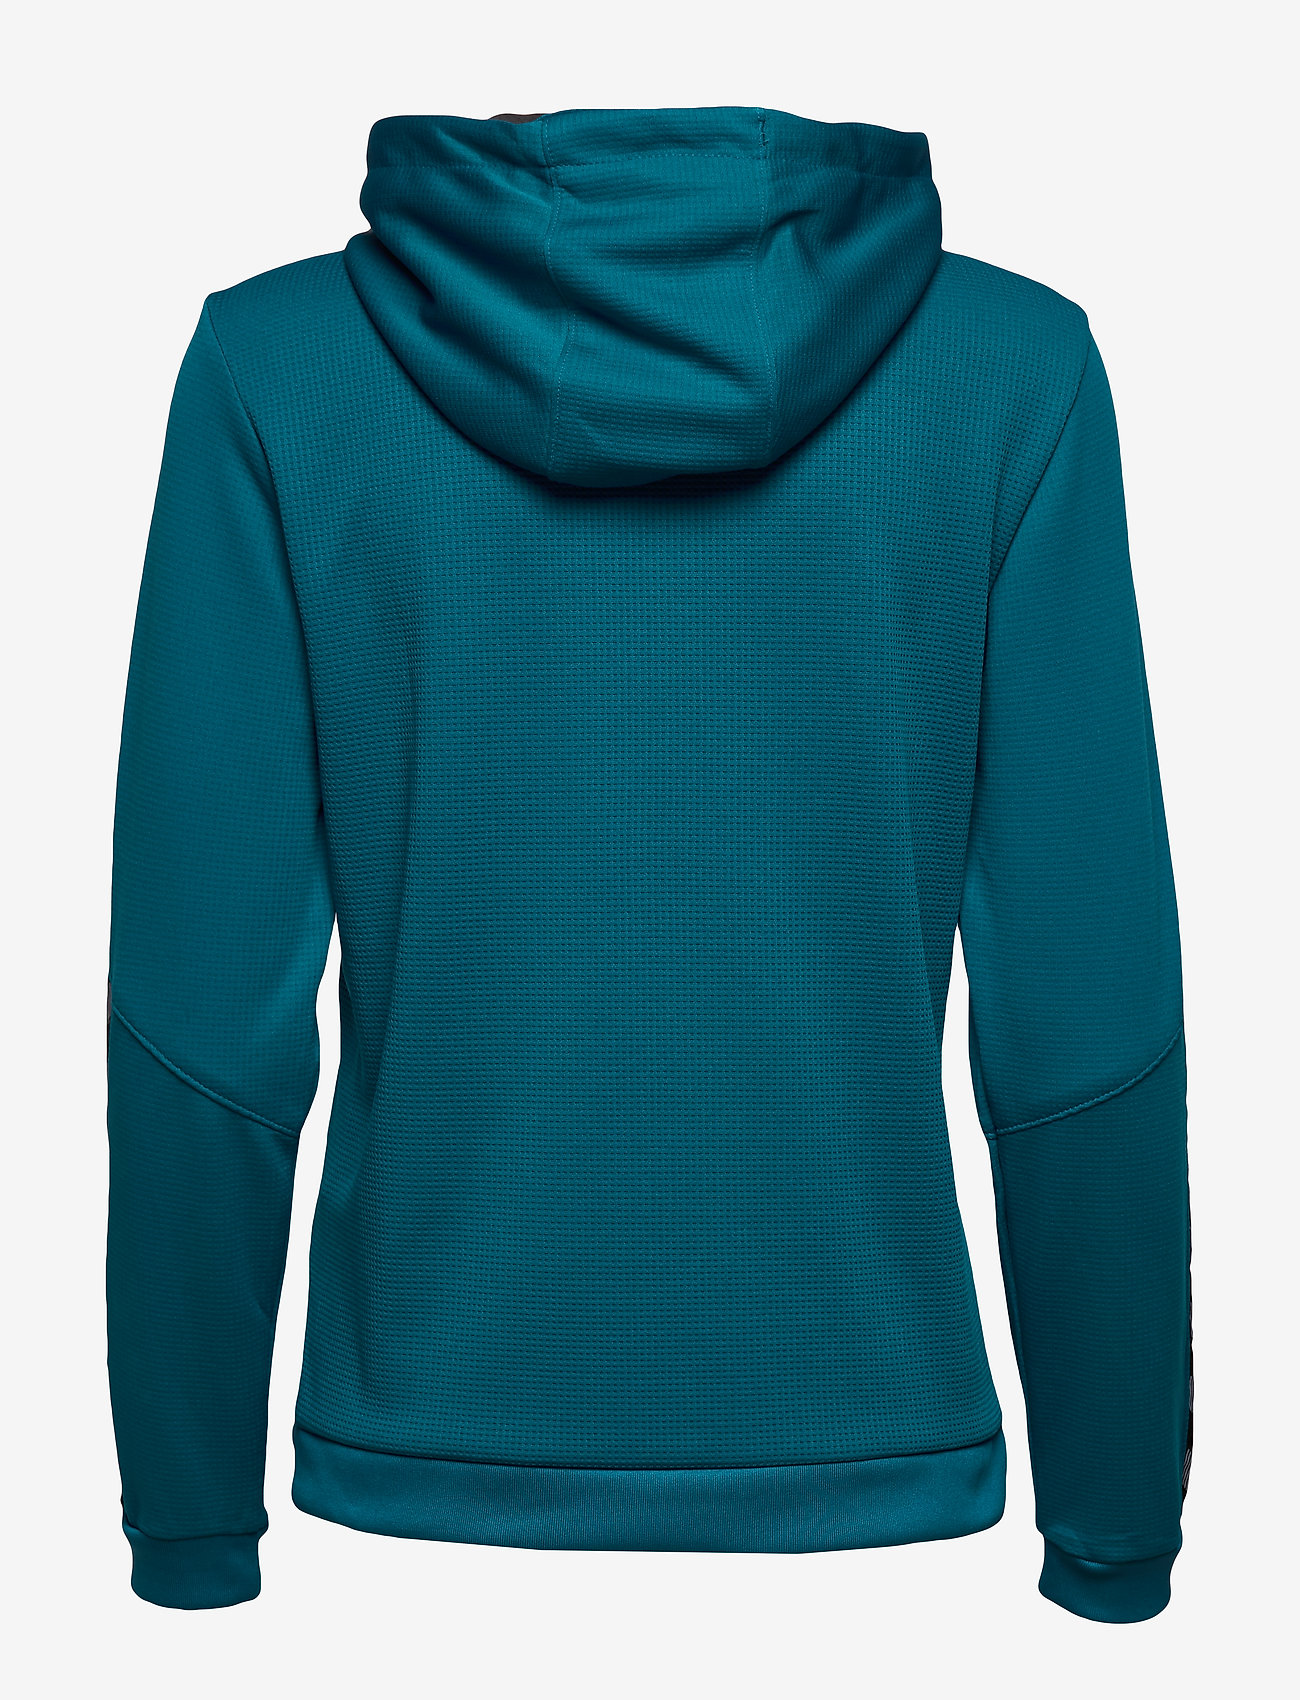 Hmlauthentic Poly Zip Hoodie Woman (Celestial) (35.96 €) - Hummel NQJPI